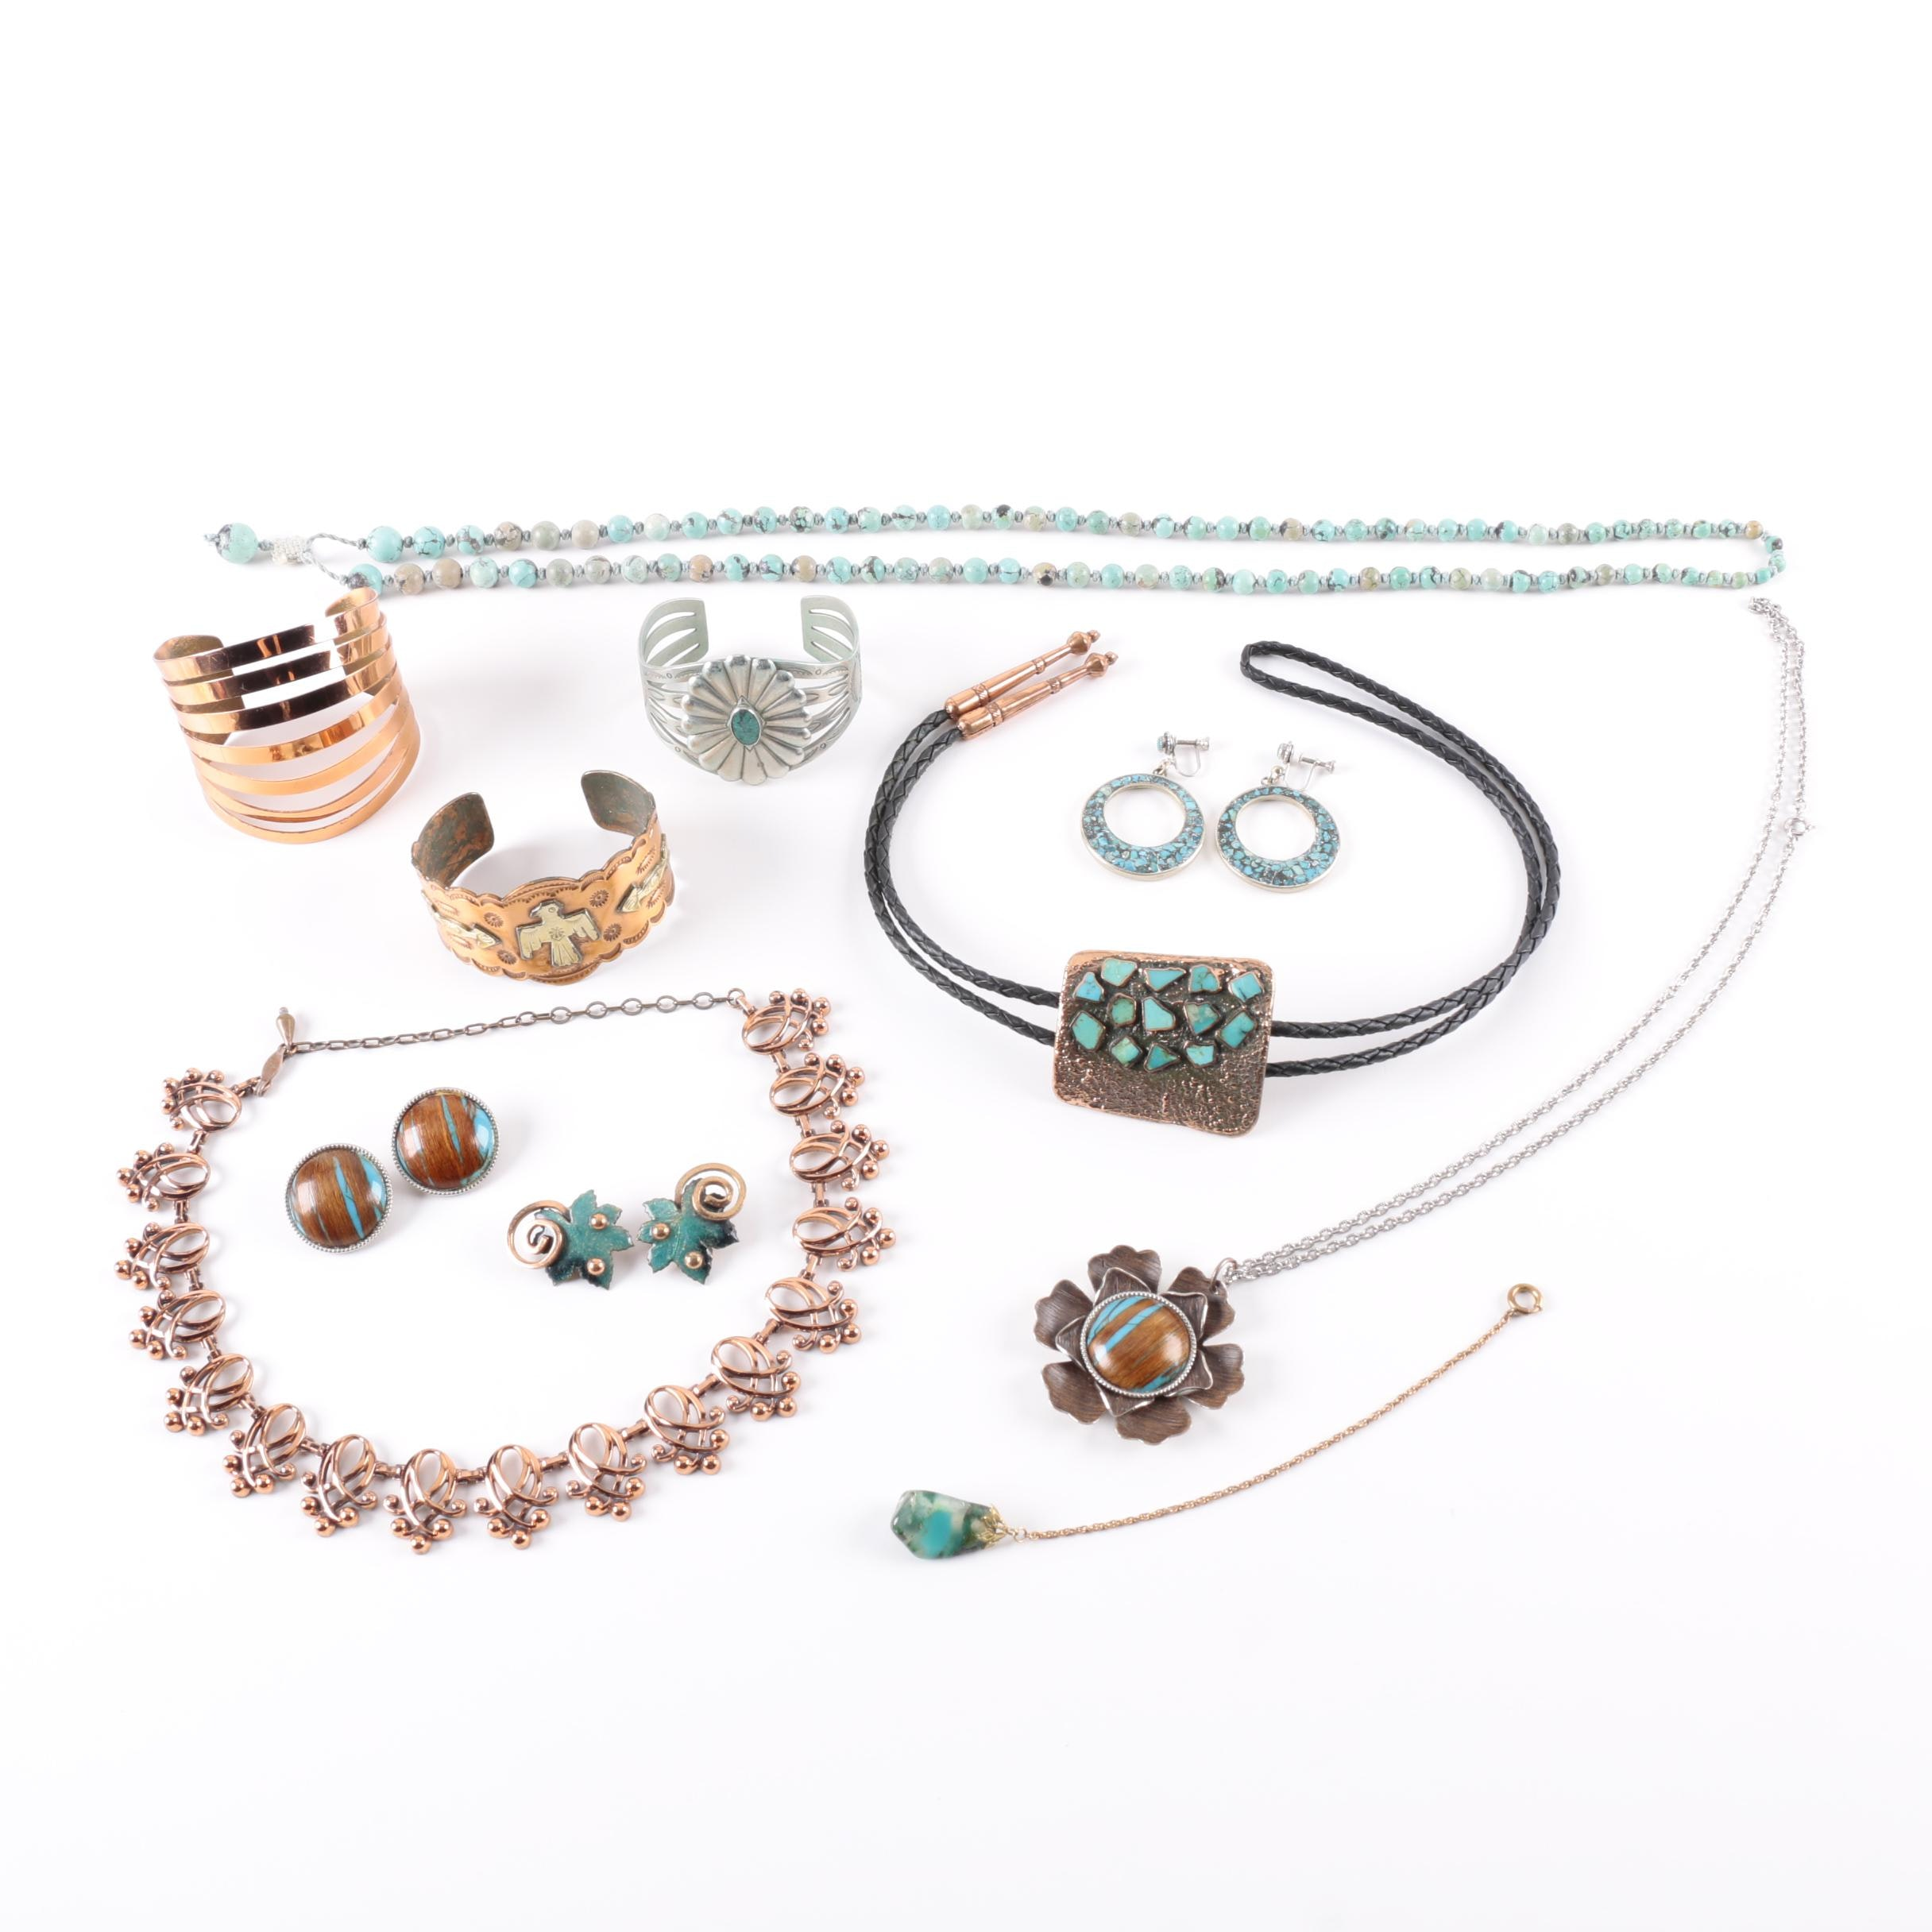 Grouping of Vintage Costume Jewelry Featuring Renoir and Matisse